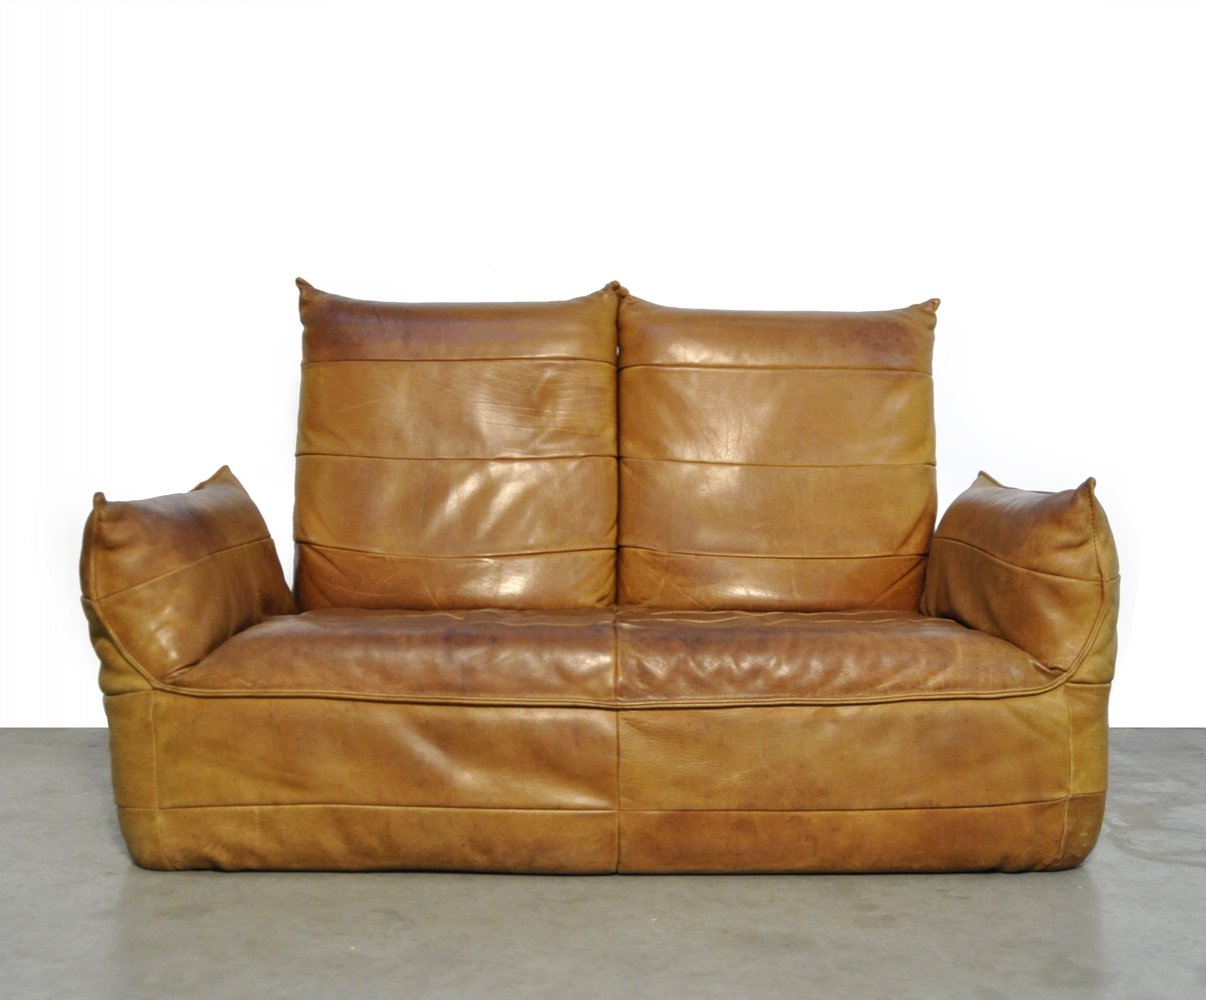 Patchwork leather 2-seater sofa by Gerard van den berg for Montis, 1970s